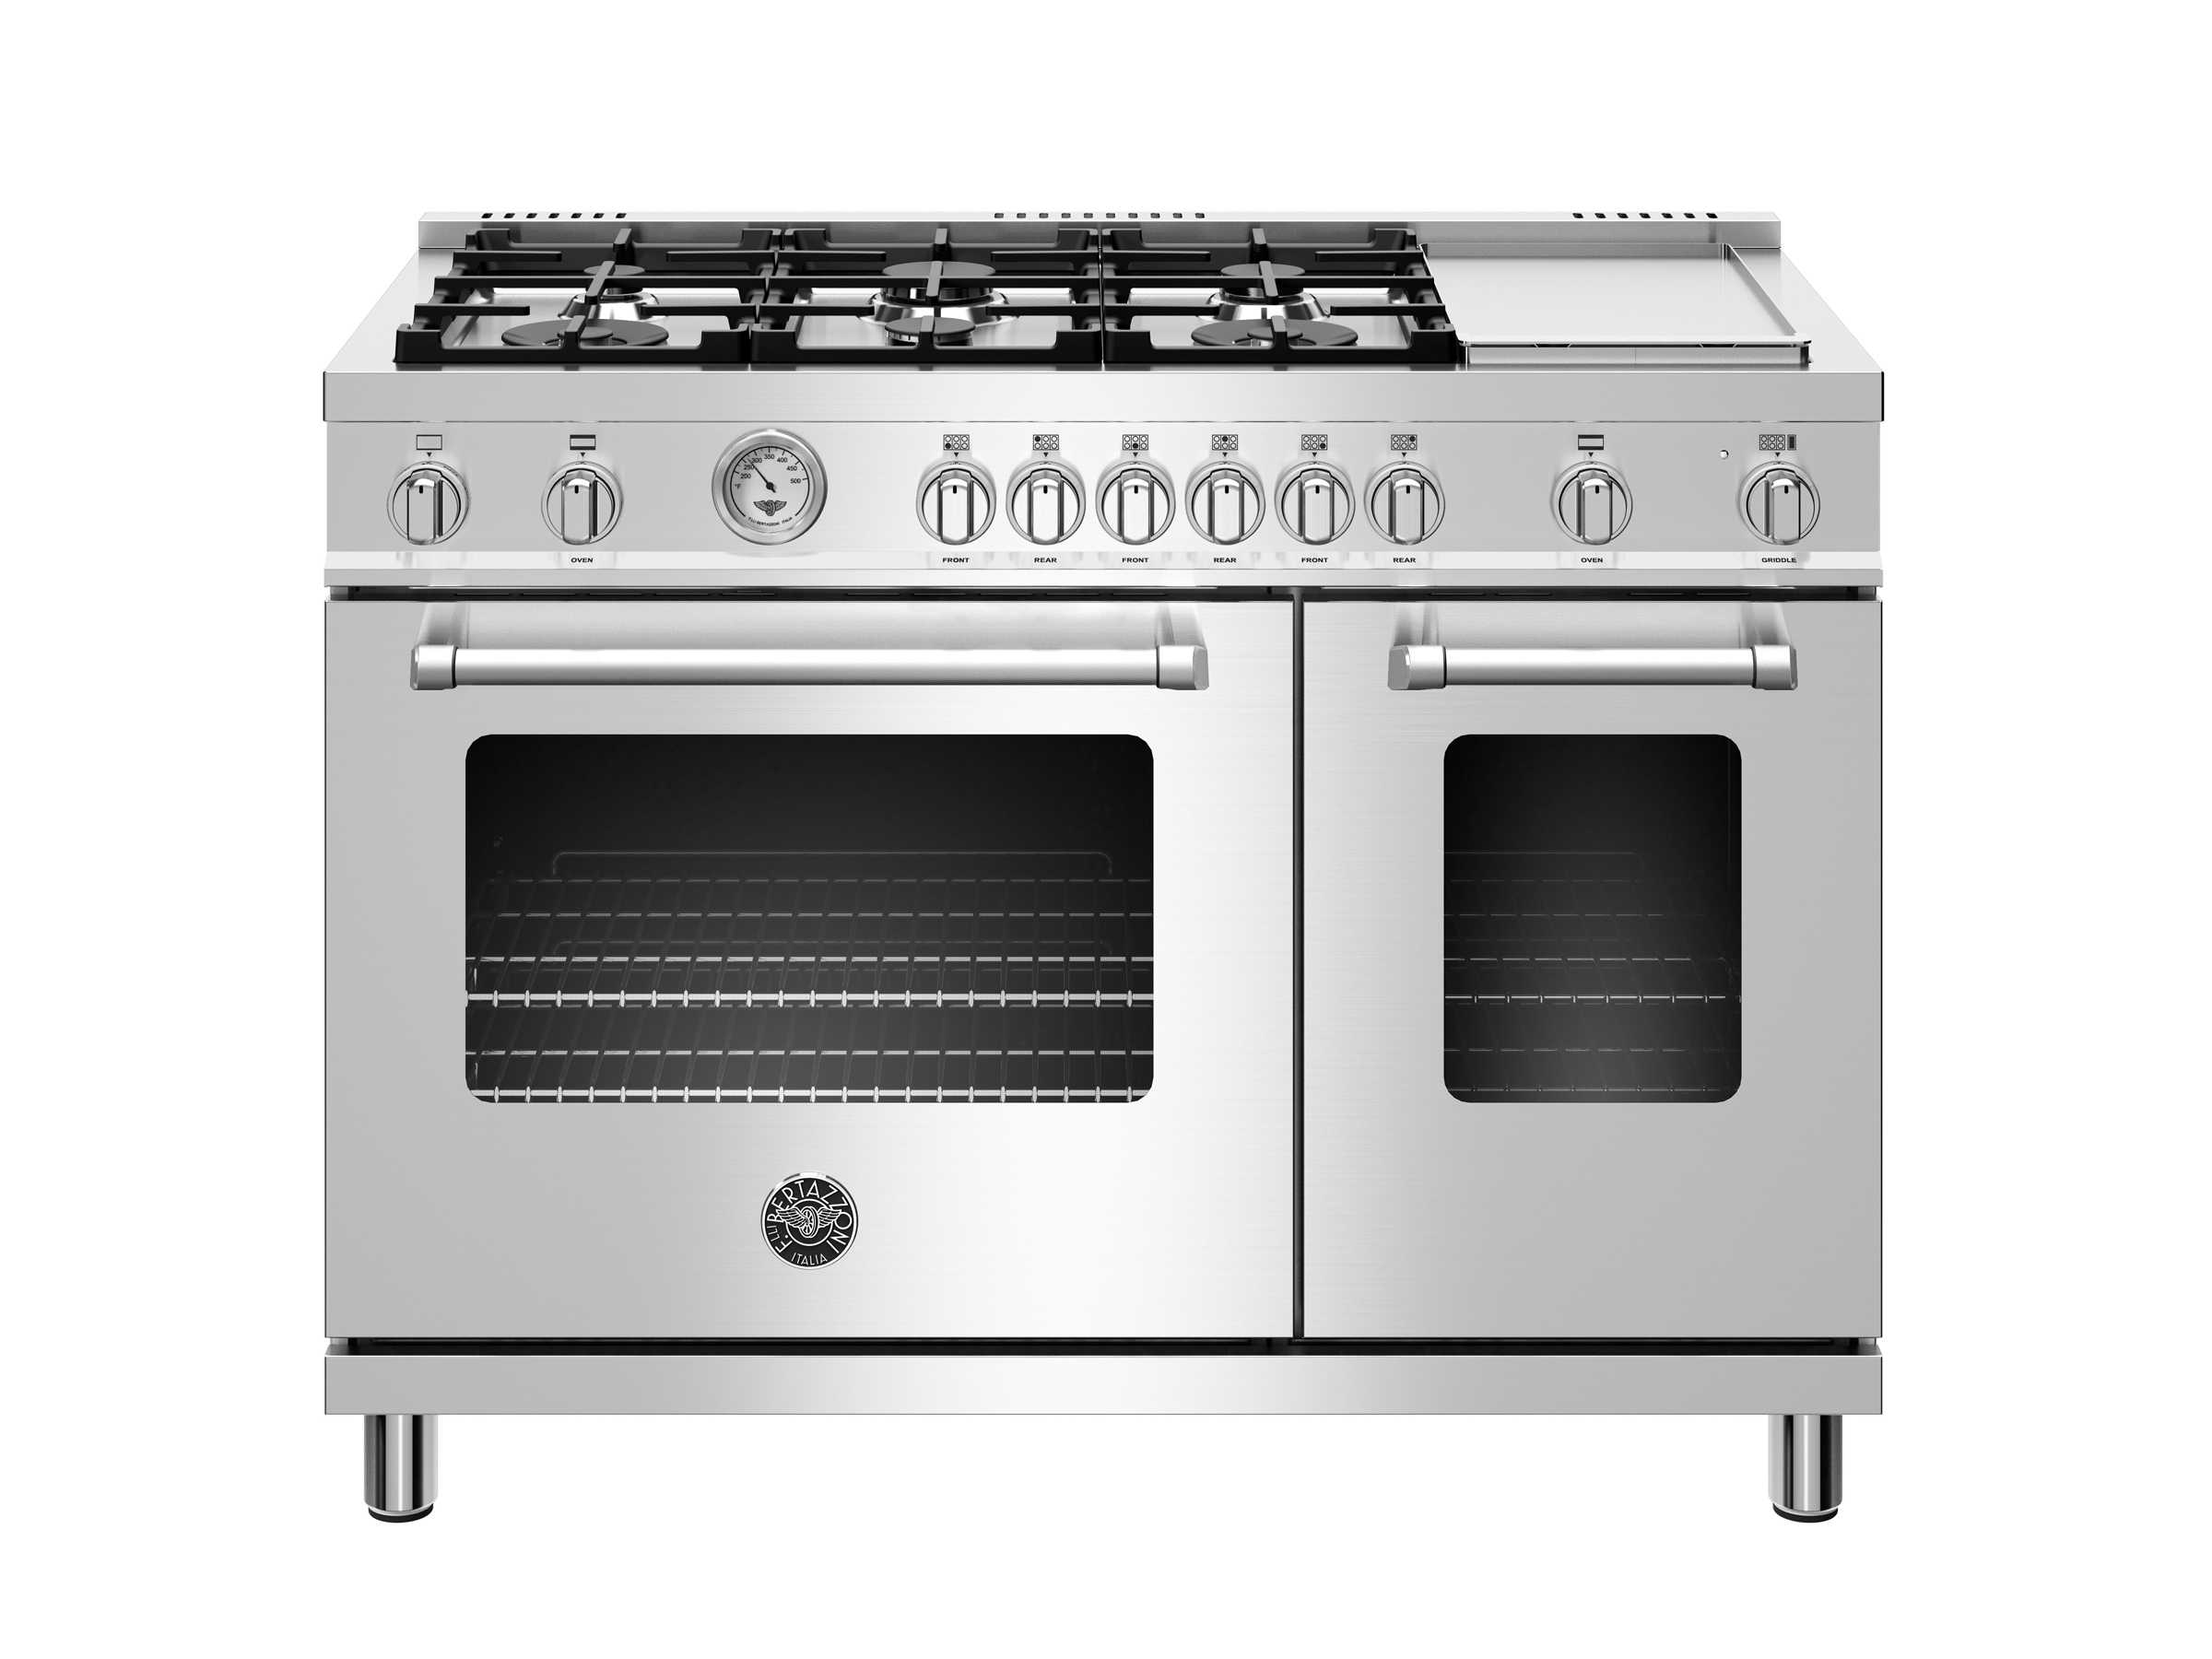 Specifications of the Bertazzoni Master Series